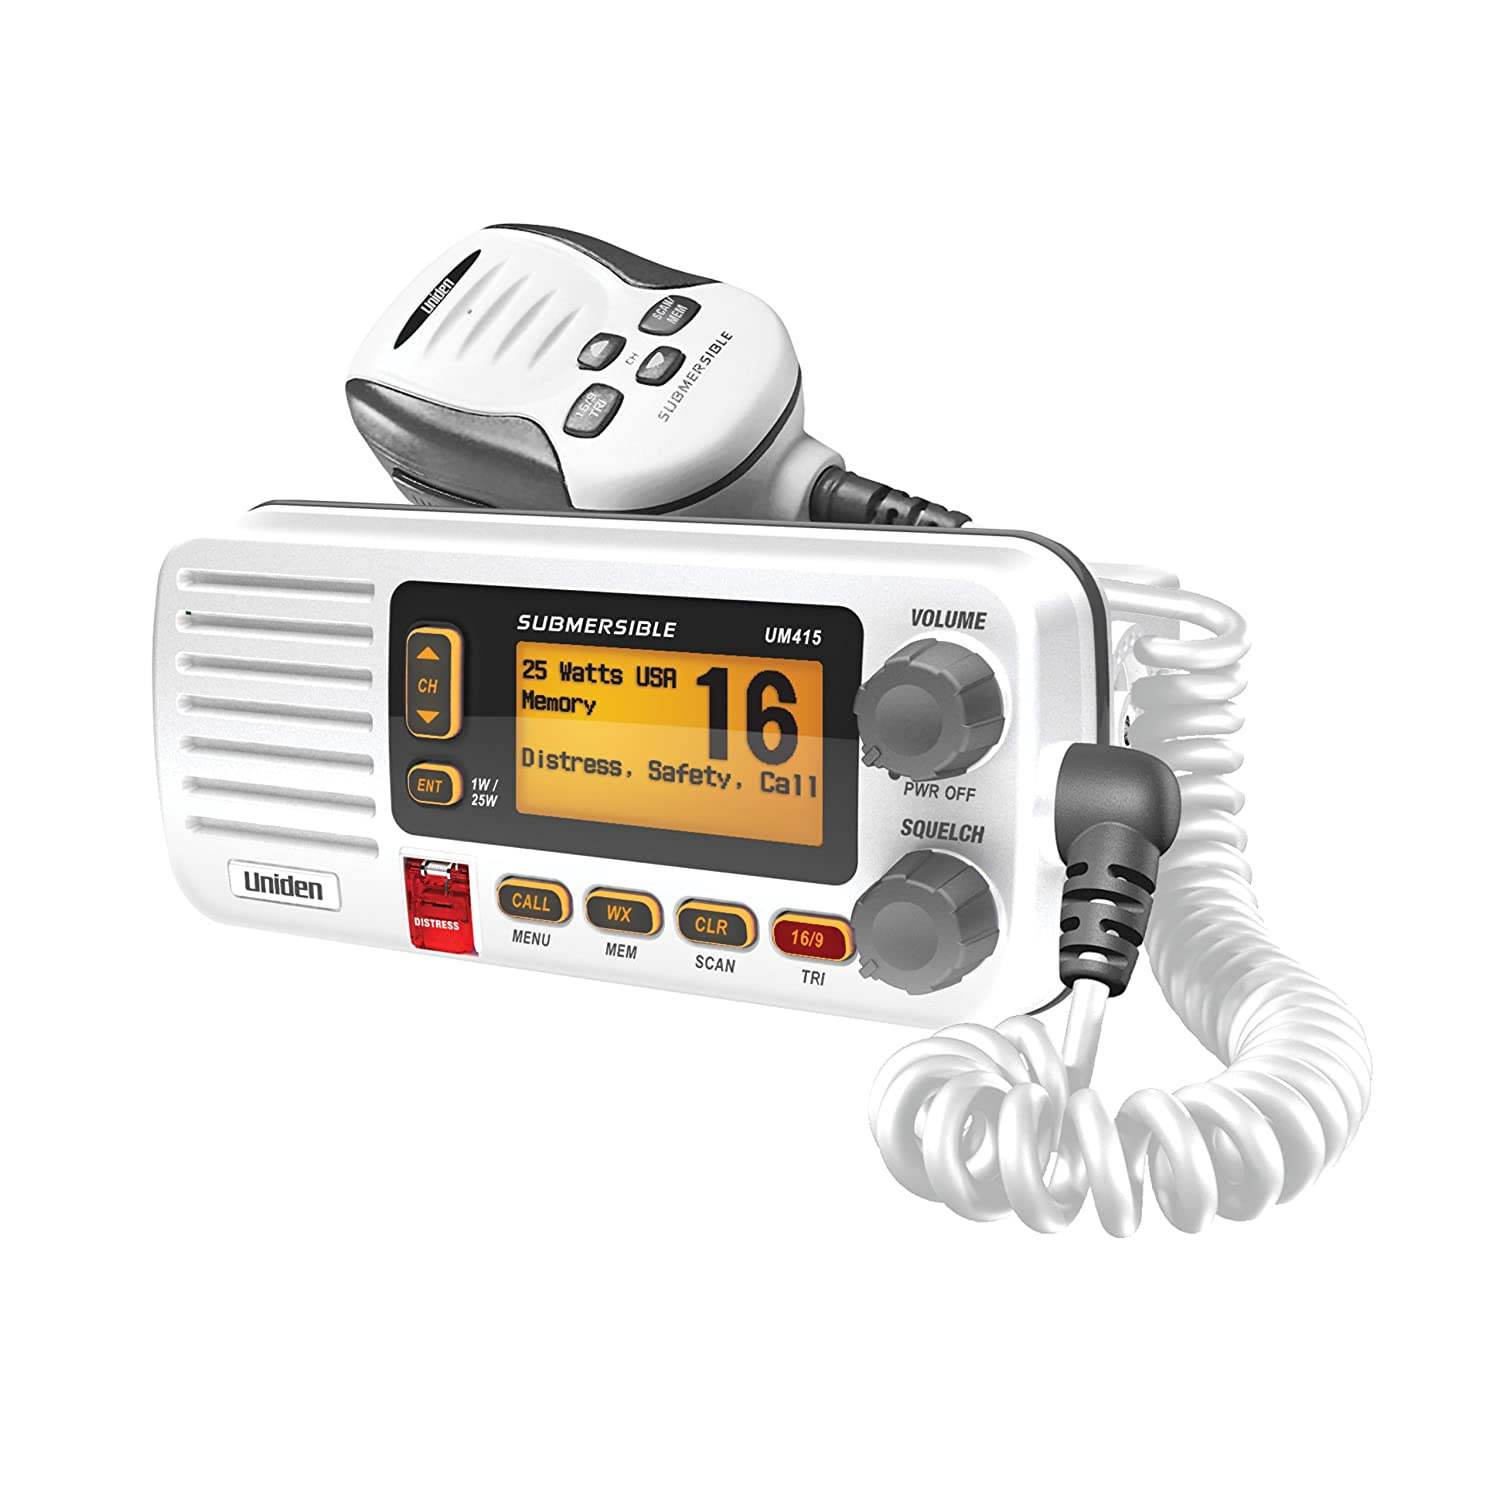 Uniden UM415BK Full Featured VHF Marine Radio Uniden CA